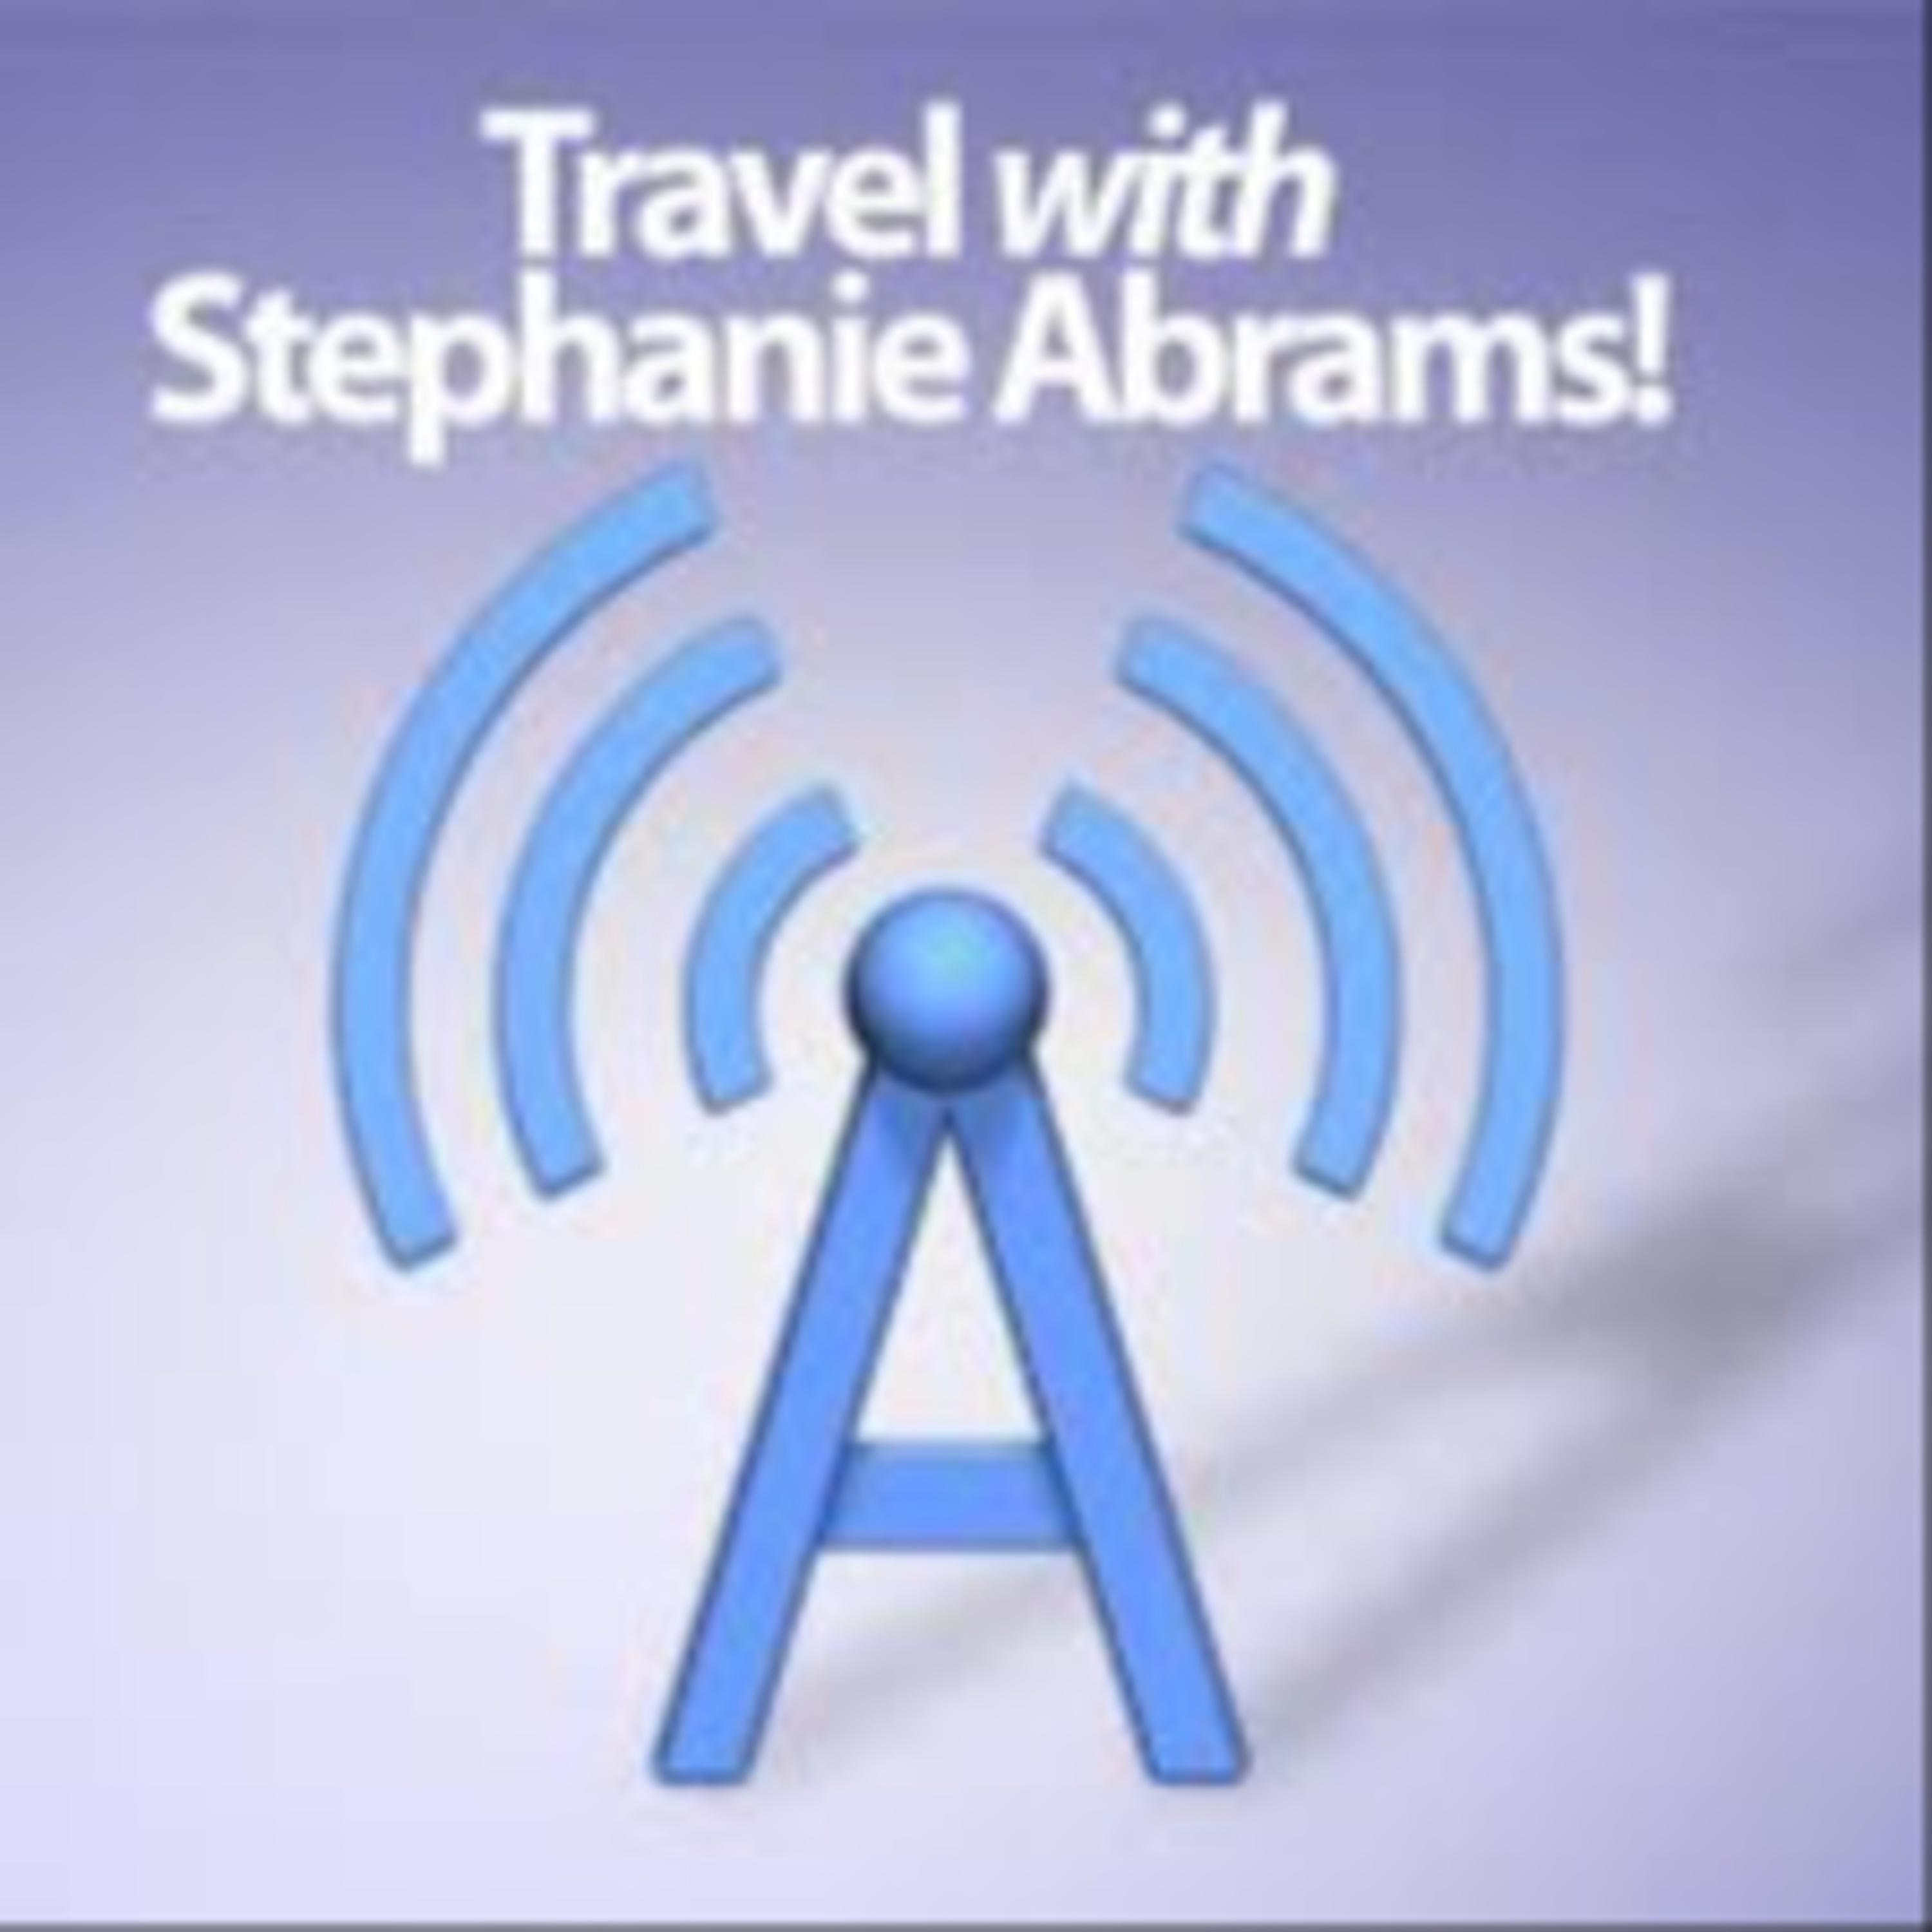 Travel WITH Stephanie Abrams_October 25, 2020_Visit Lake Havasu City with Mayor Sheehy